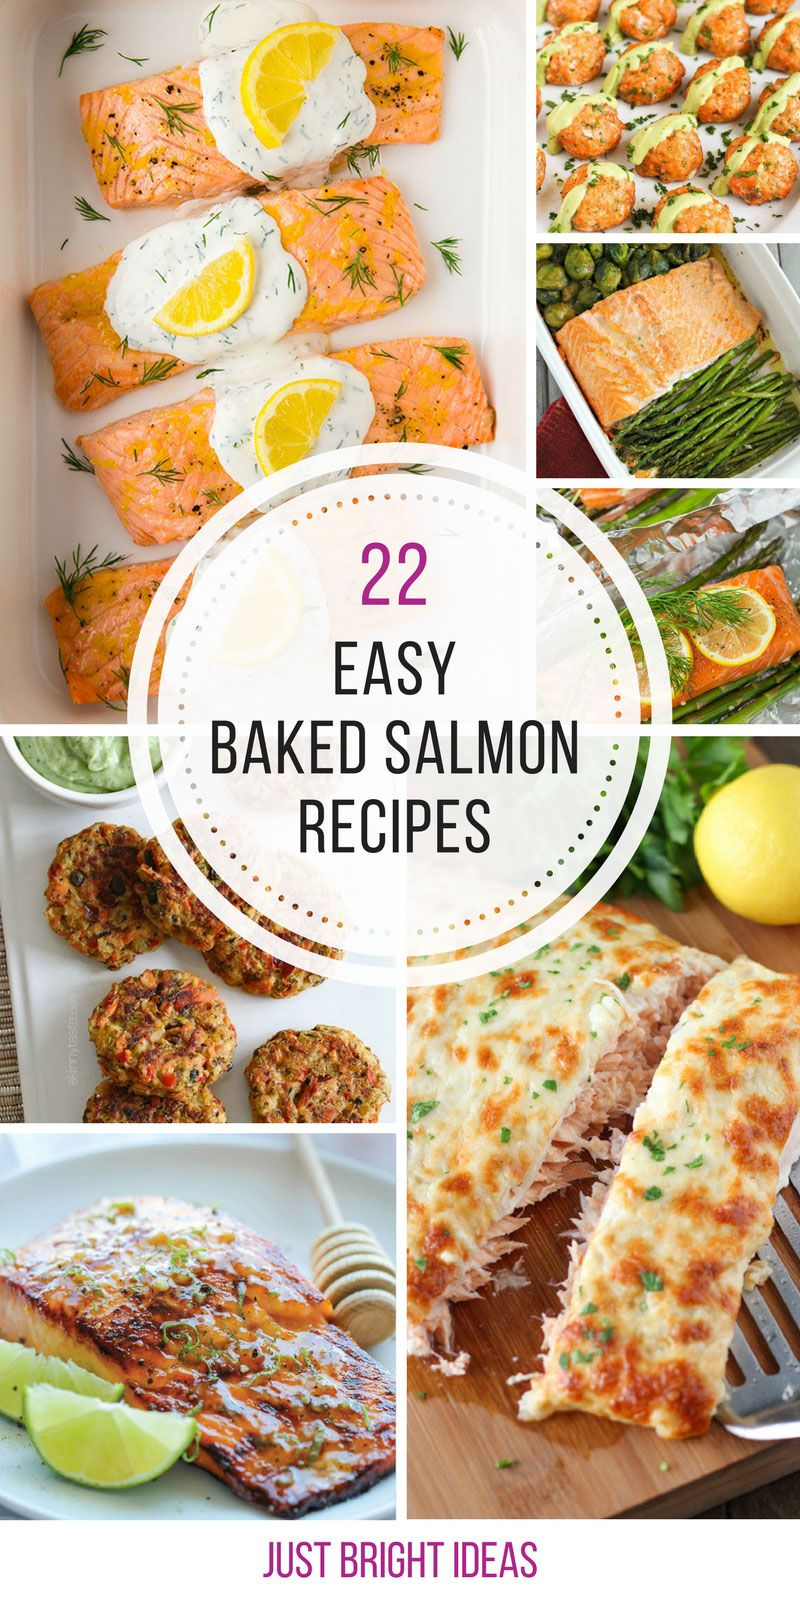 22 Best Ever Easy Baked Salmon Recipes You Need to Try